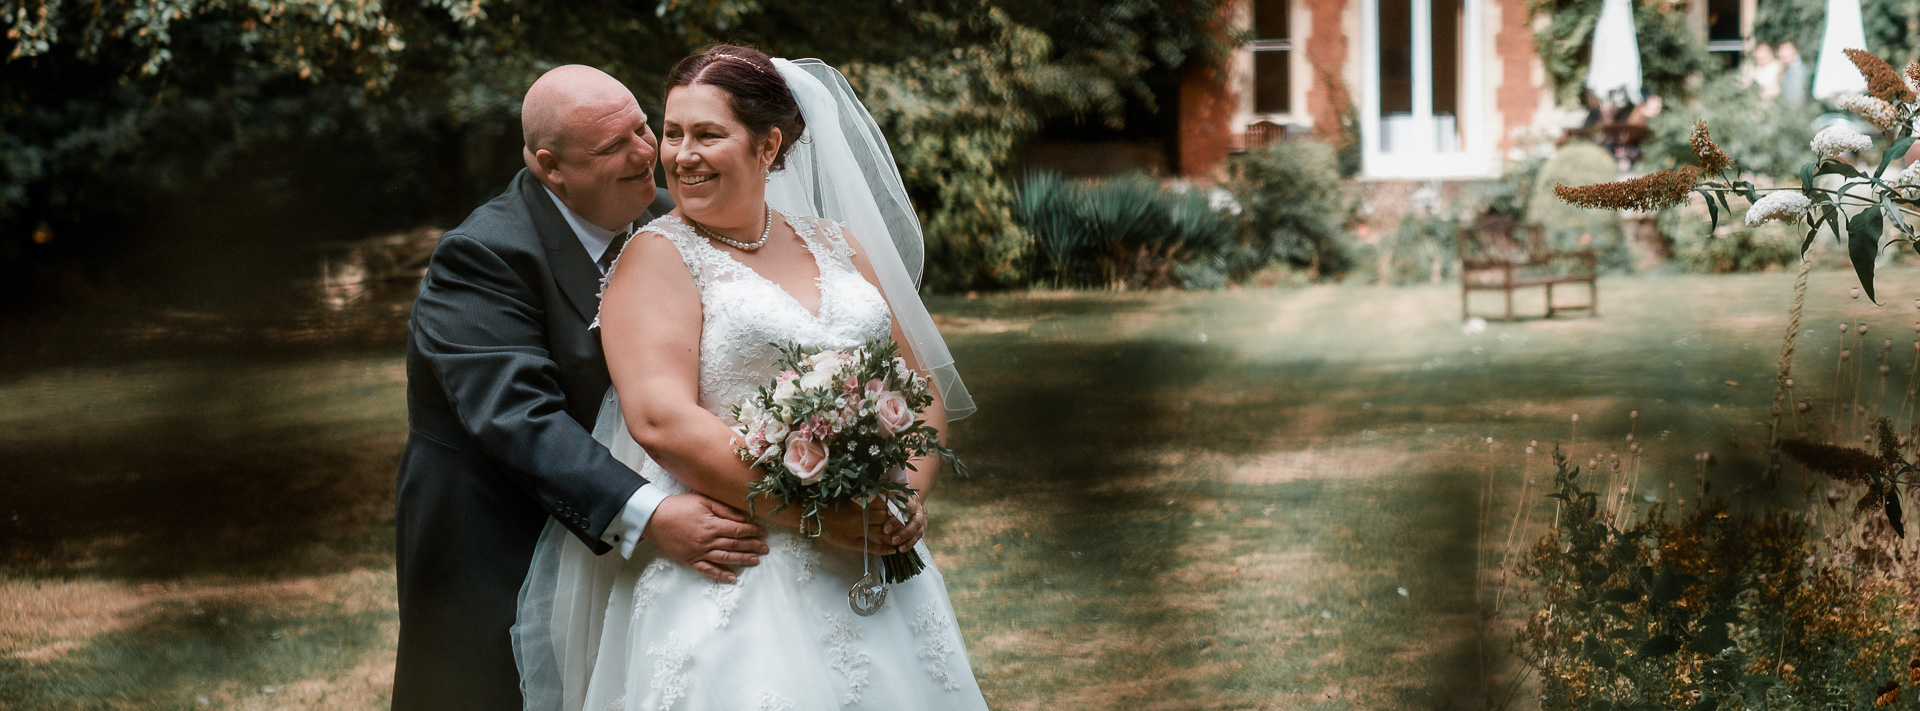 Lisa and Kevin's Wedding at Thurston Grange